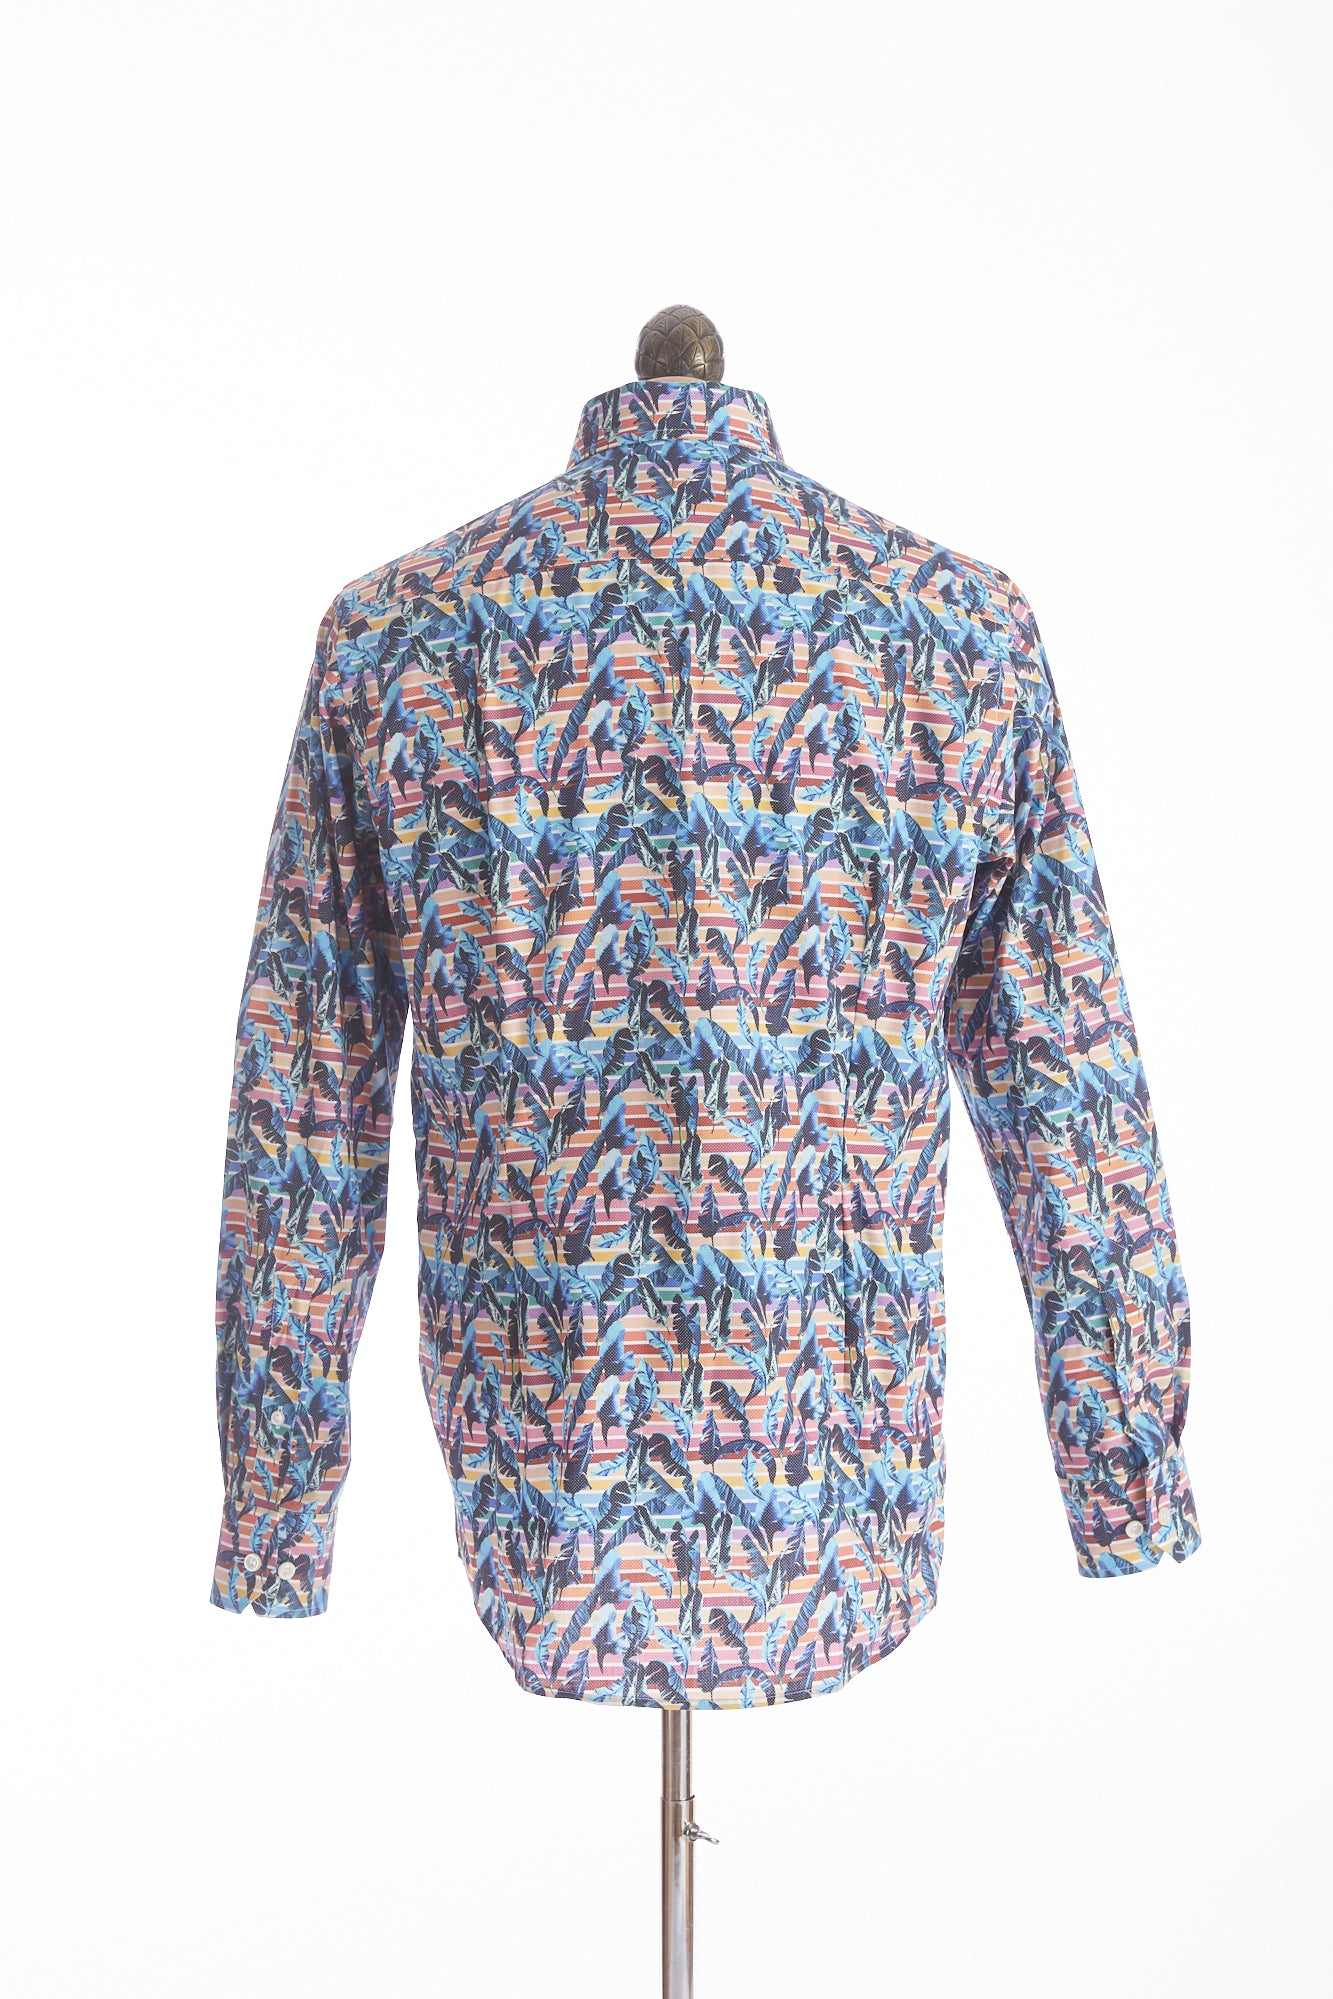 Eton Multicolour Striped Hawaiian Print Shirt - Shirts - Eton - LALONDE's